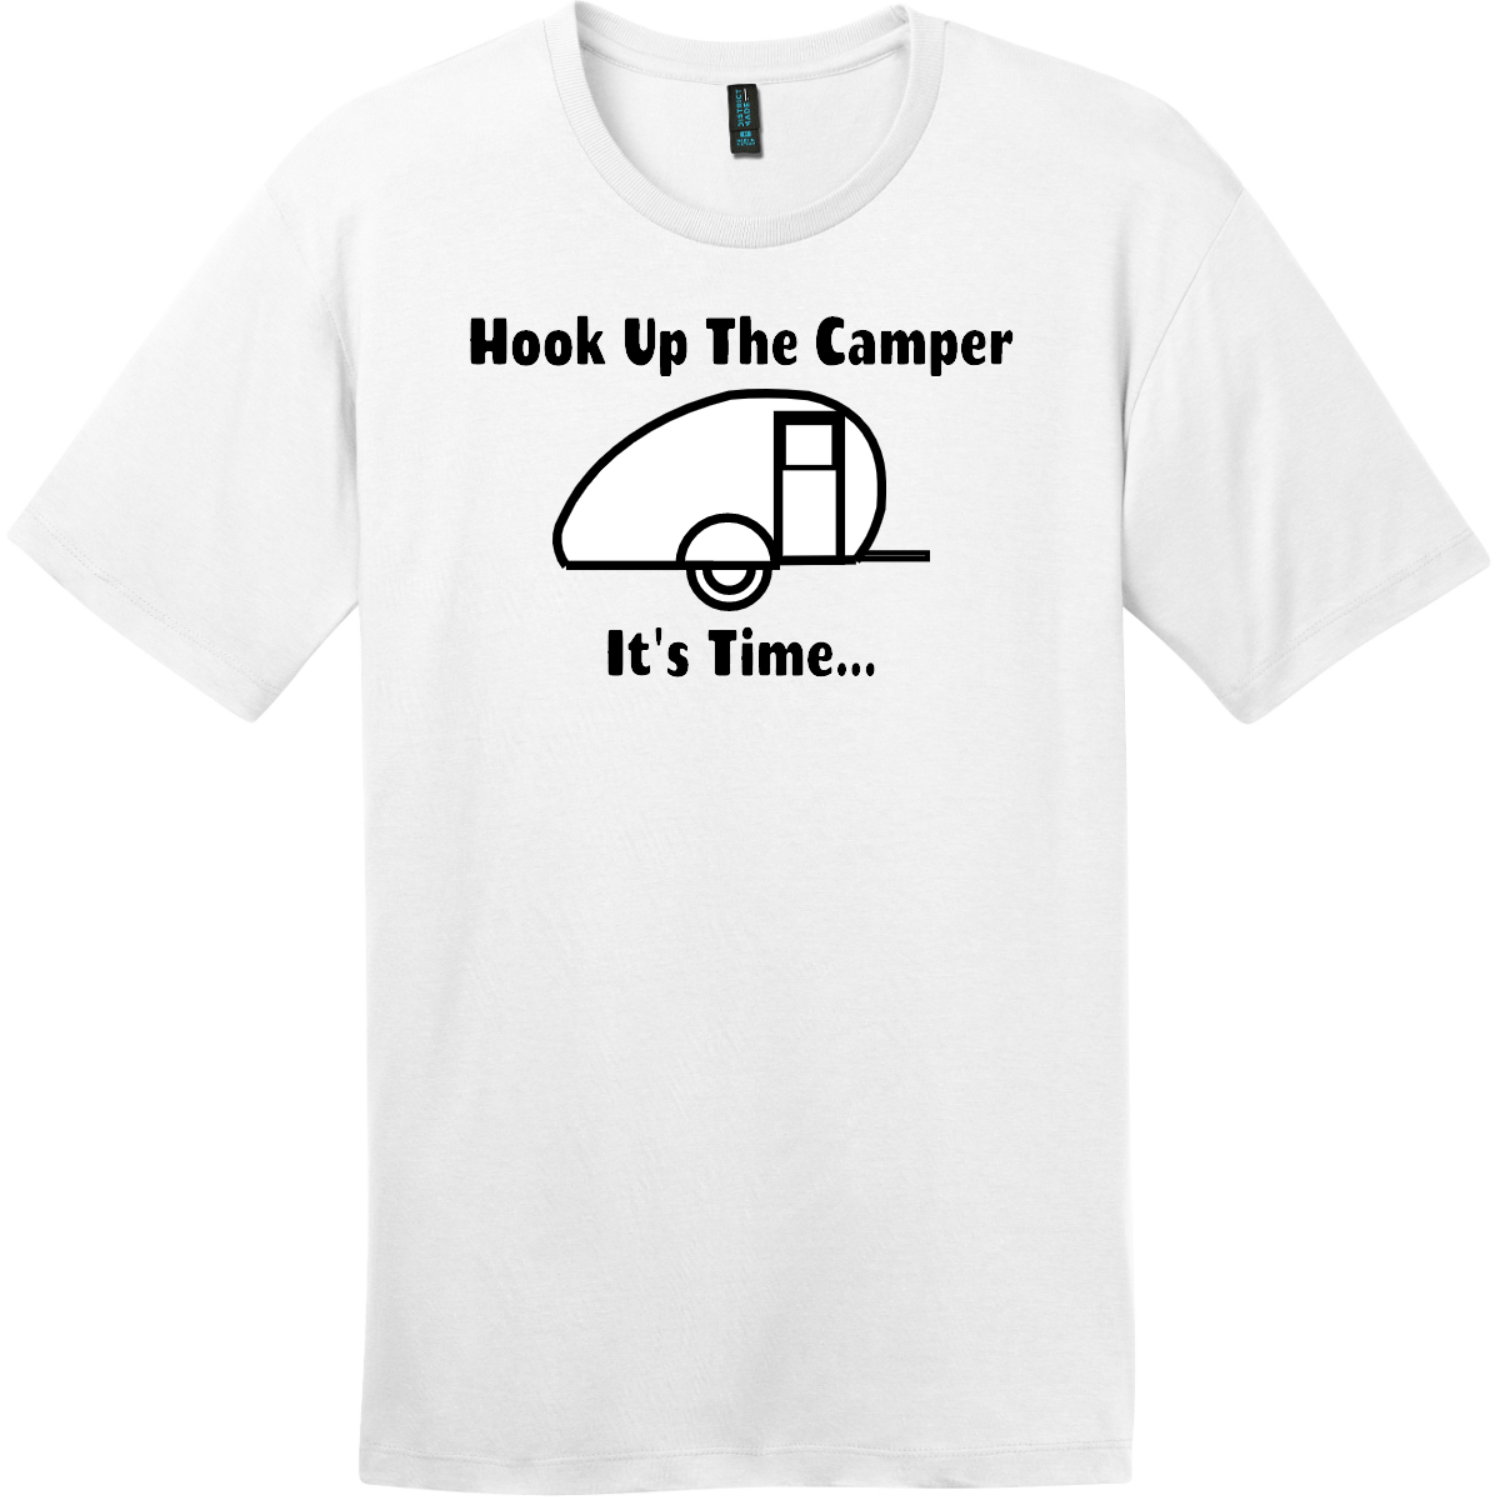 Hook Up The Camper T-Shirt Bright White District Perfect Weight Tee DT104